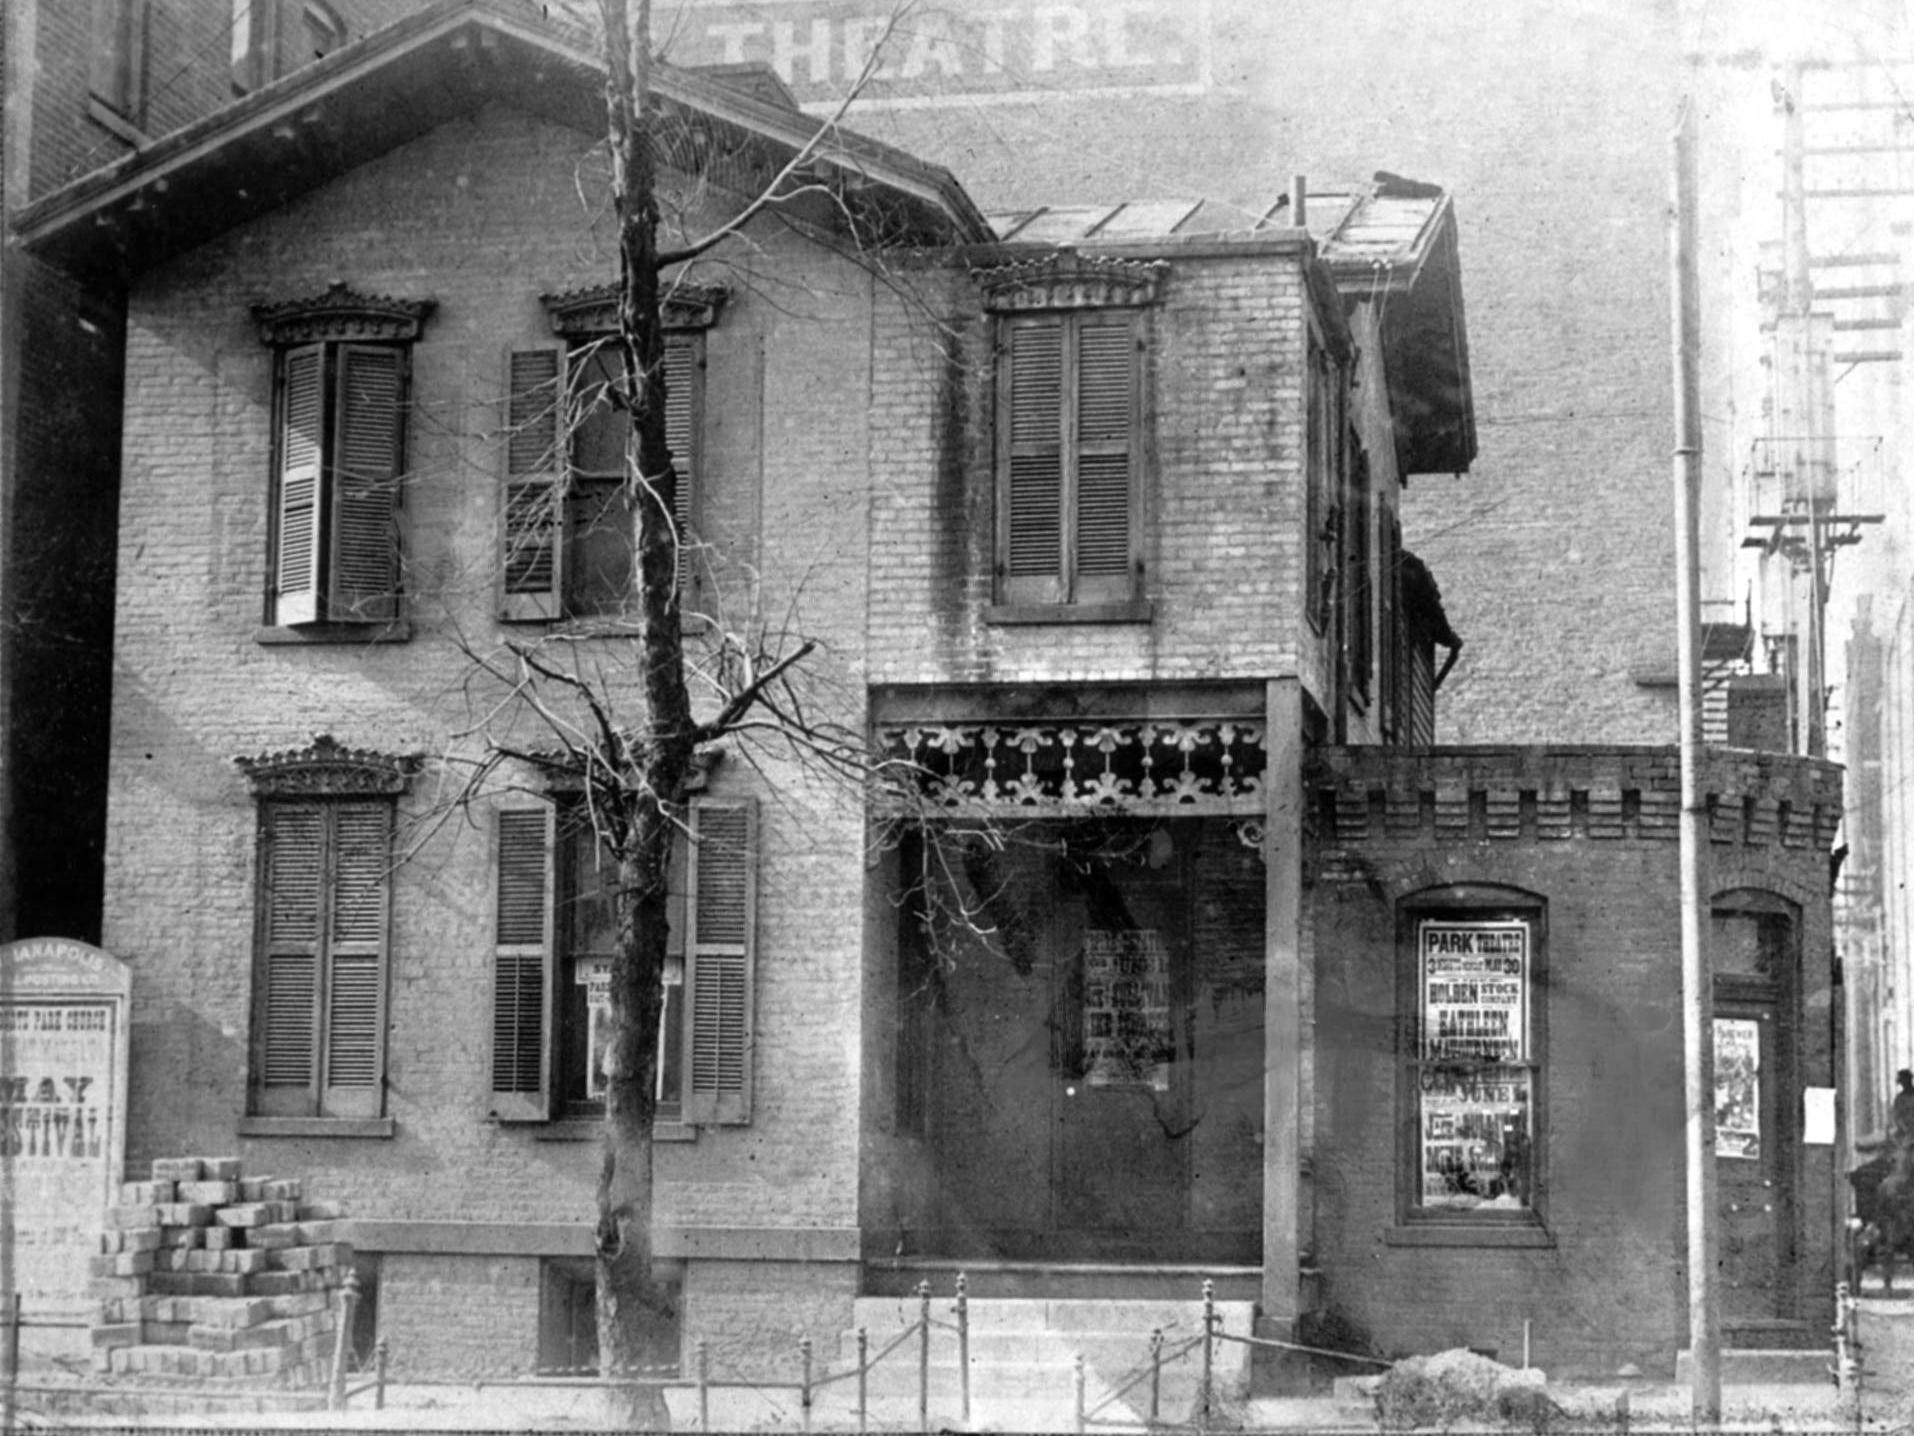 The Victorian brick house at 119-121 E. Ohio Street that was The Indianapolis StarÕs birthplace in 1903. Six months after it started, The Star had 70,836 subscribers.